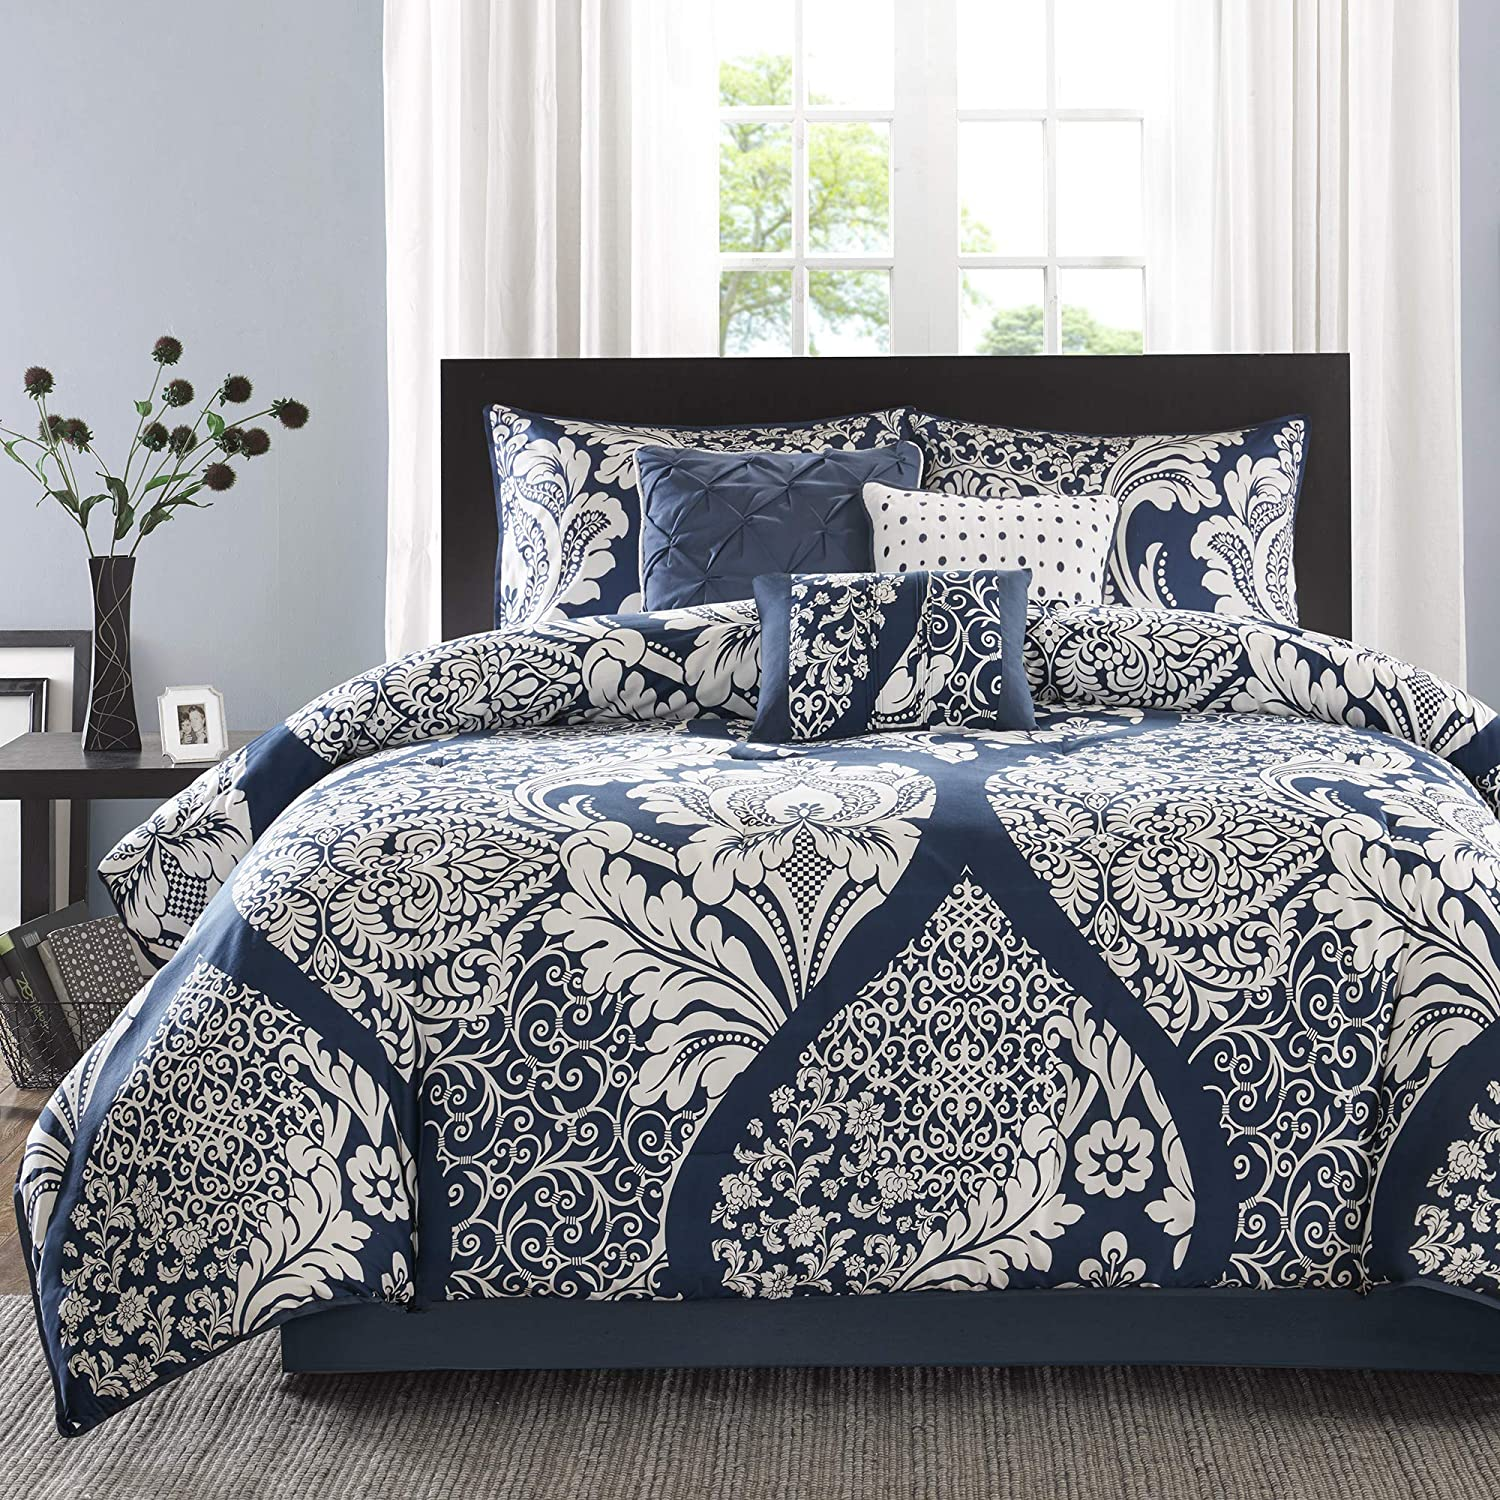 "Madison Park Sateen Cotton Comforter Set-Traditional Luxe Design All Season Lightweight Bedding, Shams, Bedskirt, Decorative Pillows, King(104""x92""), Vienna, Damask Indigo 7 Piece"